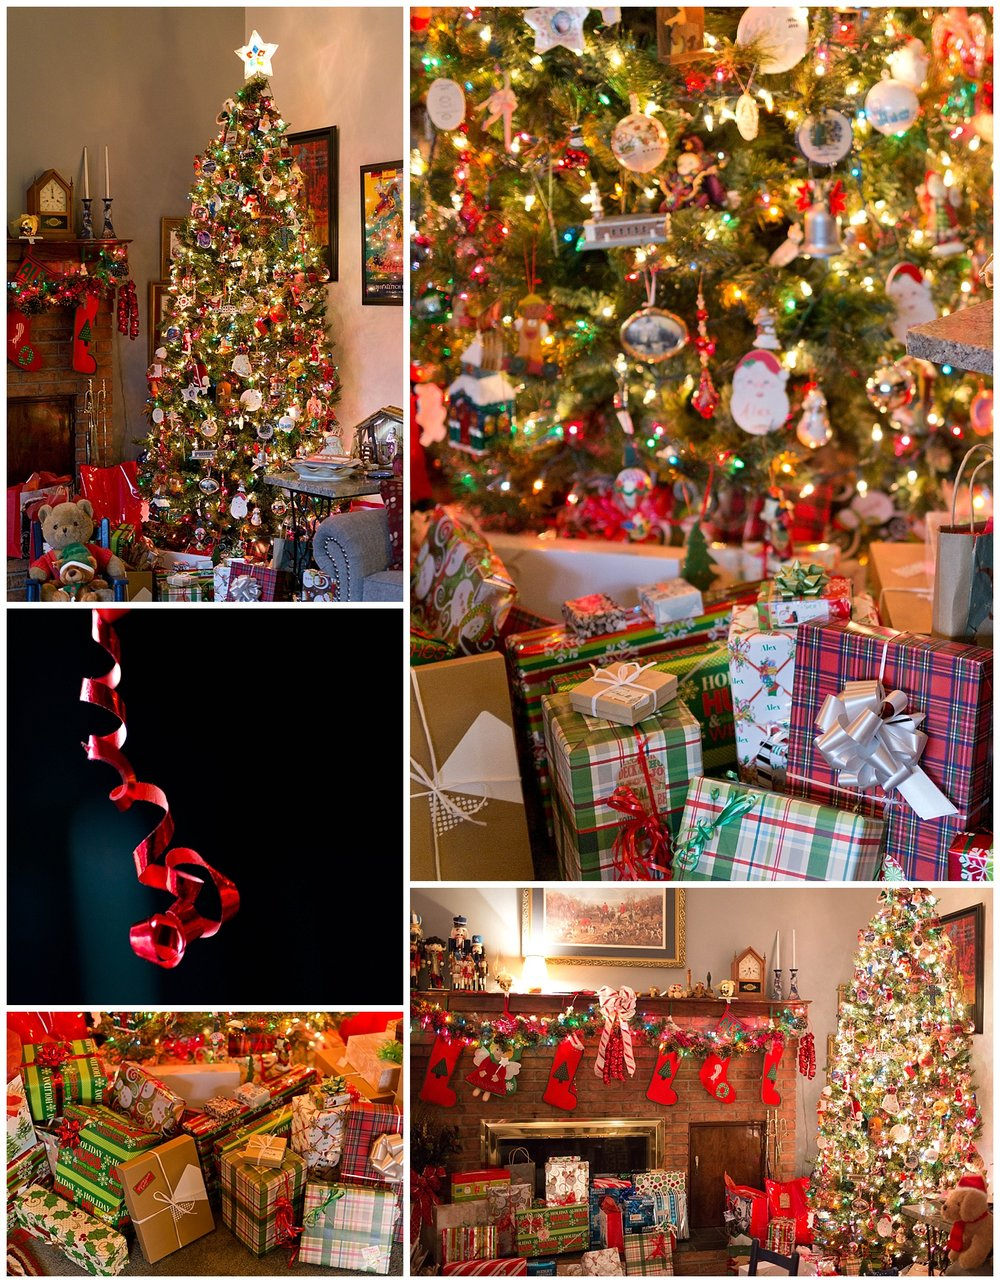 Christmas tree, gifts, ribbon, decorations